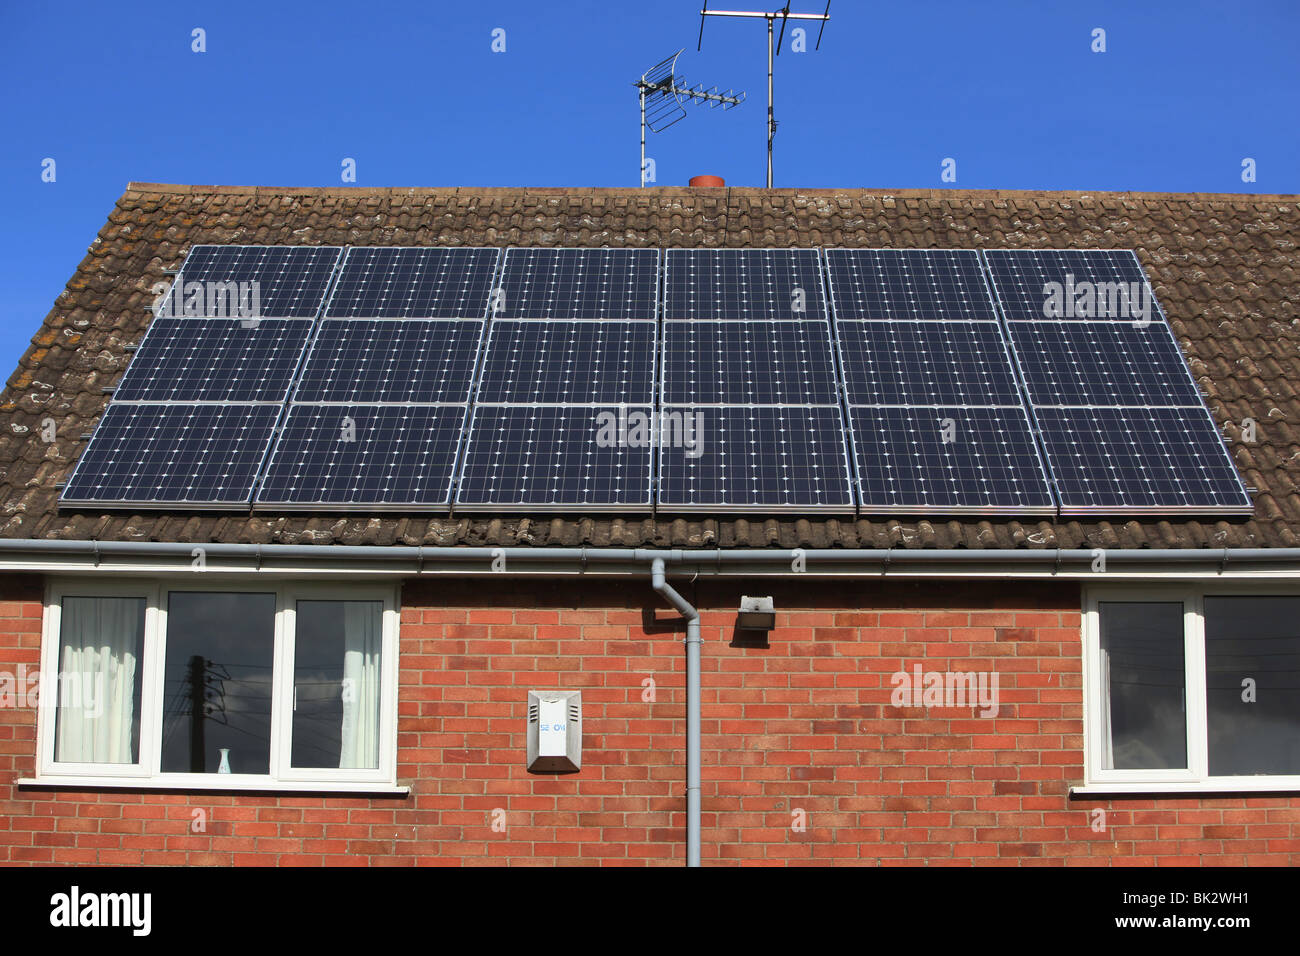 A UK Residential House With New Solar Panel Heating On Its Roof On A Sunny  Clear Blue Sky Day